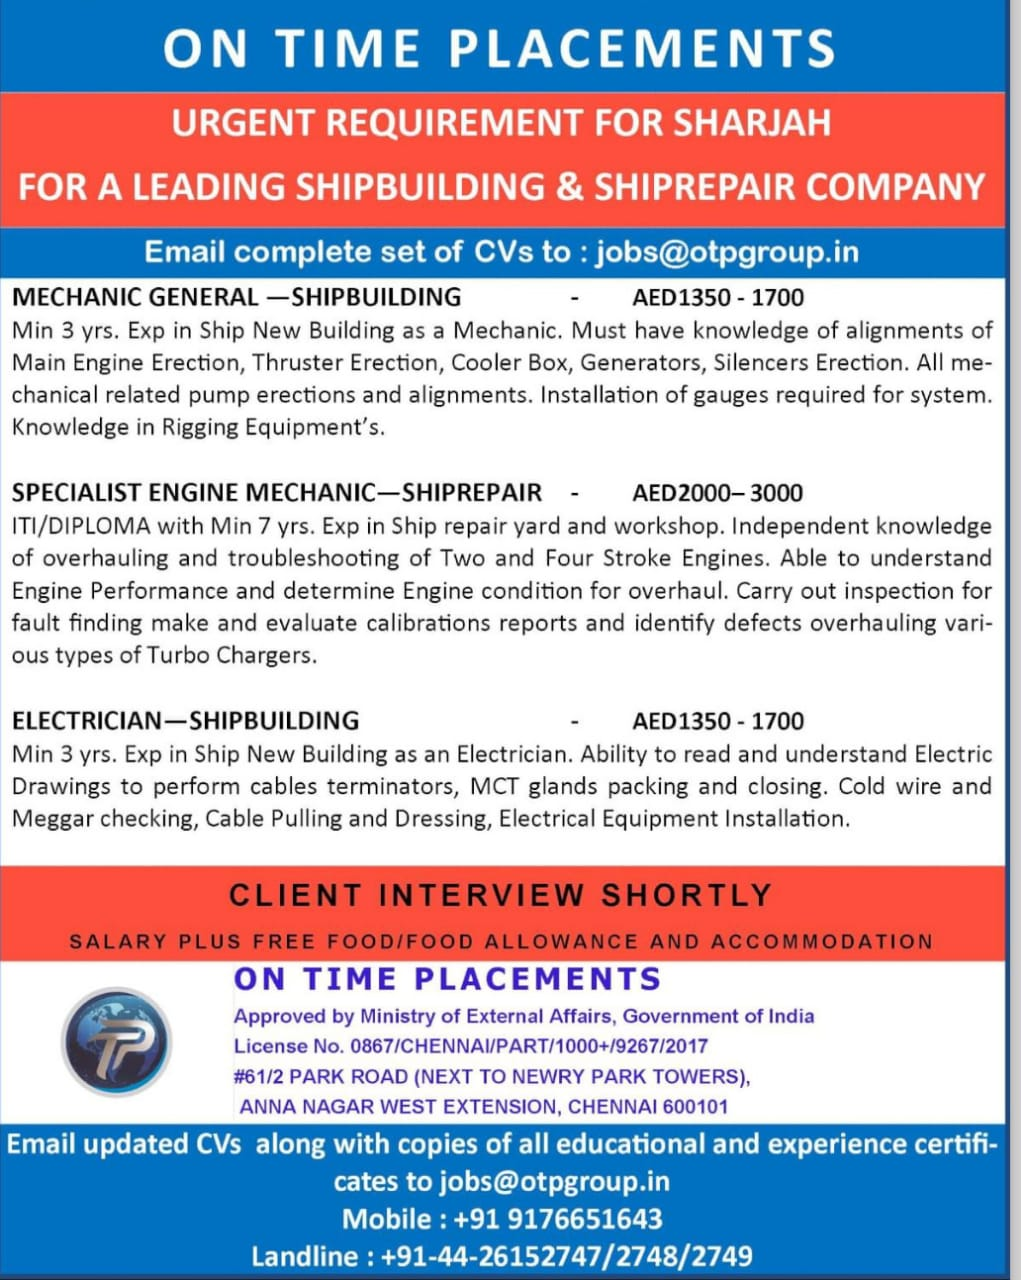 WALK-IN-INTERVIEW IN CHENNAI FOR A LEADING SHIP BULIDING & SHIPREPAIR COMPANY